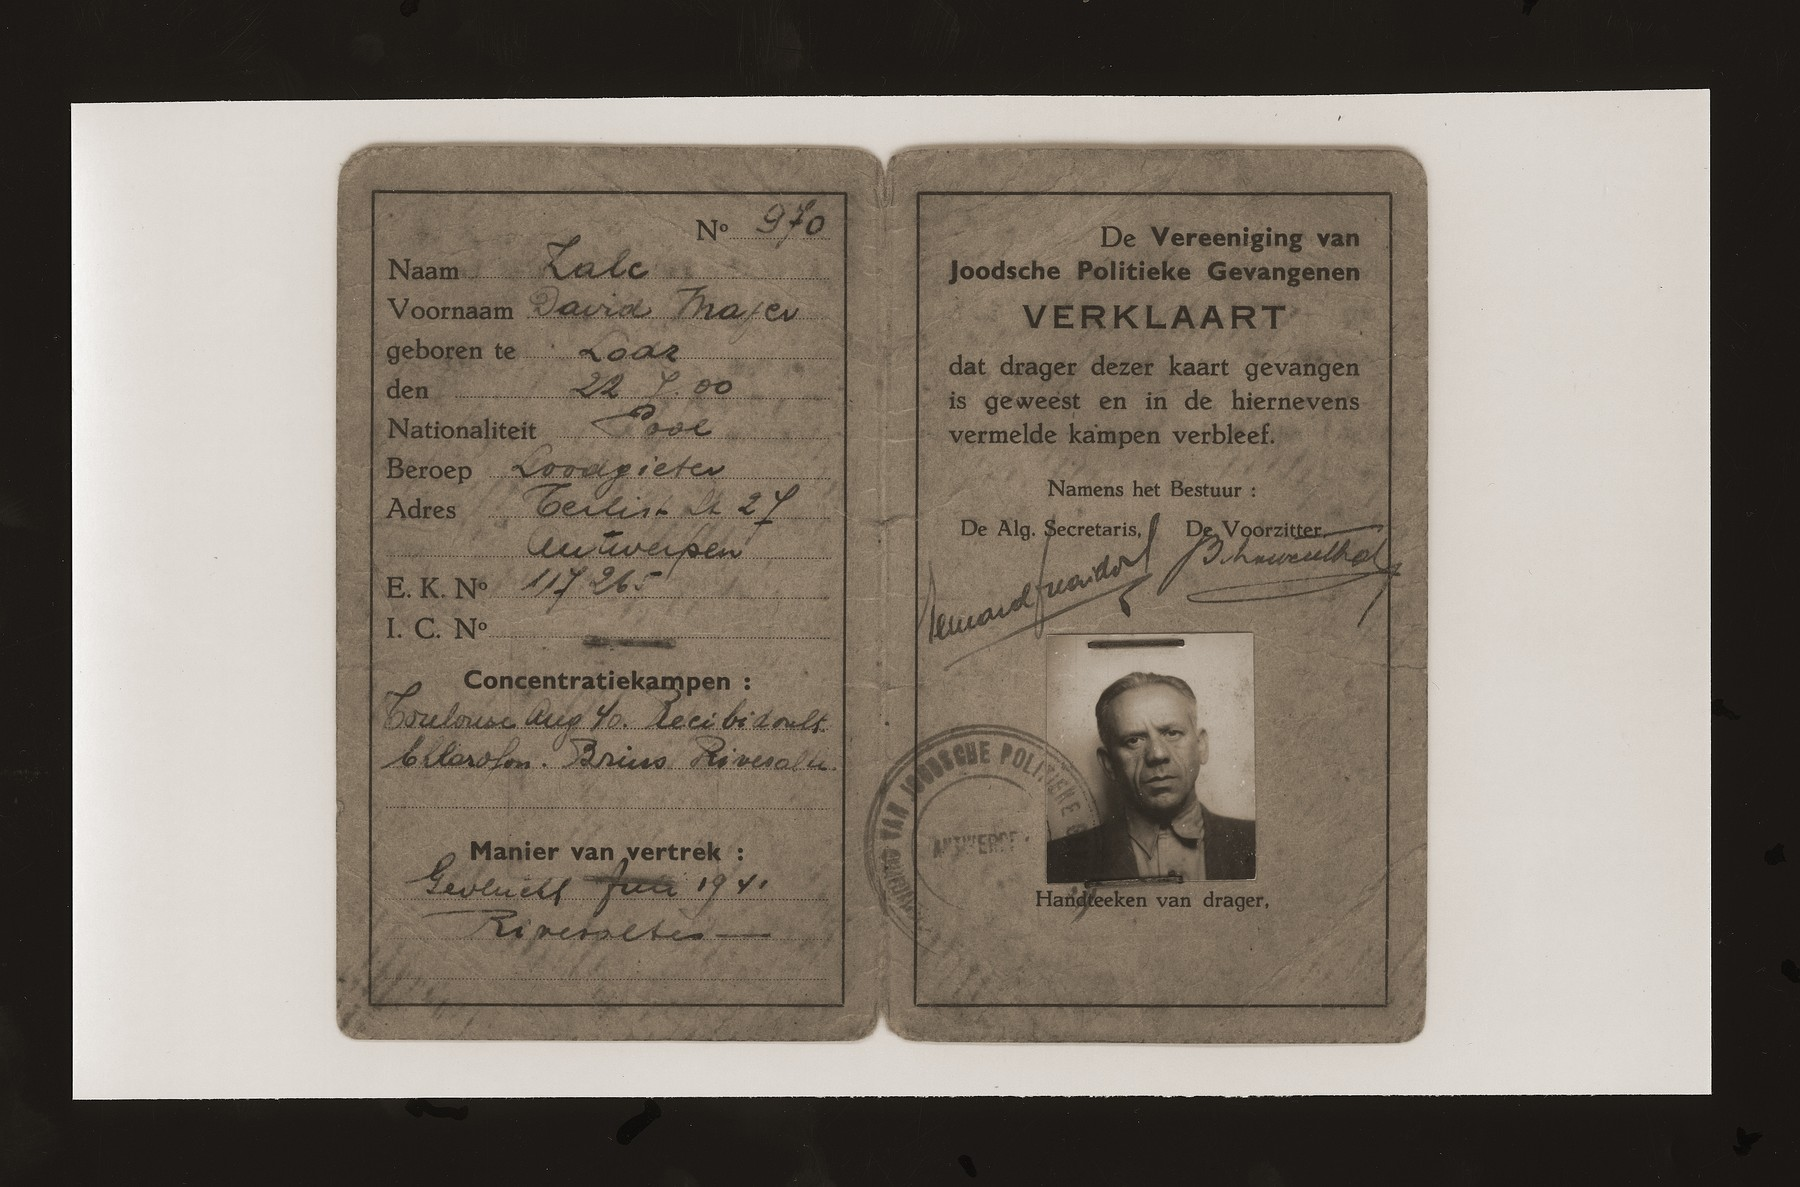 Identification card issued to David Majer Zalc by the Organization of [former] Jewish Political Prisoners [Vereeniging van Joodsche Politieke Gevangenen] in postwar Belgium, certifying that he is a concentration camp survivor.